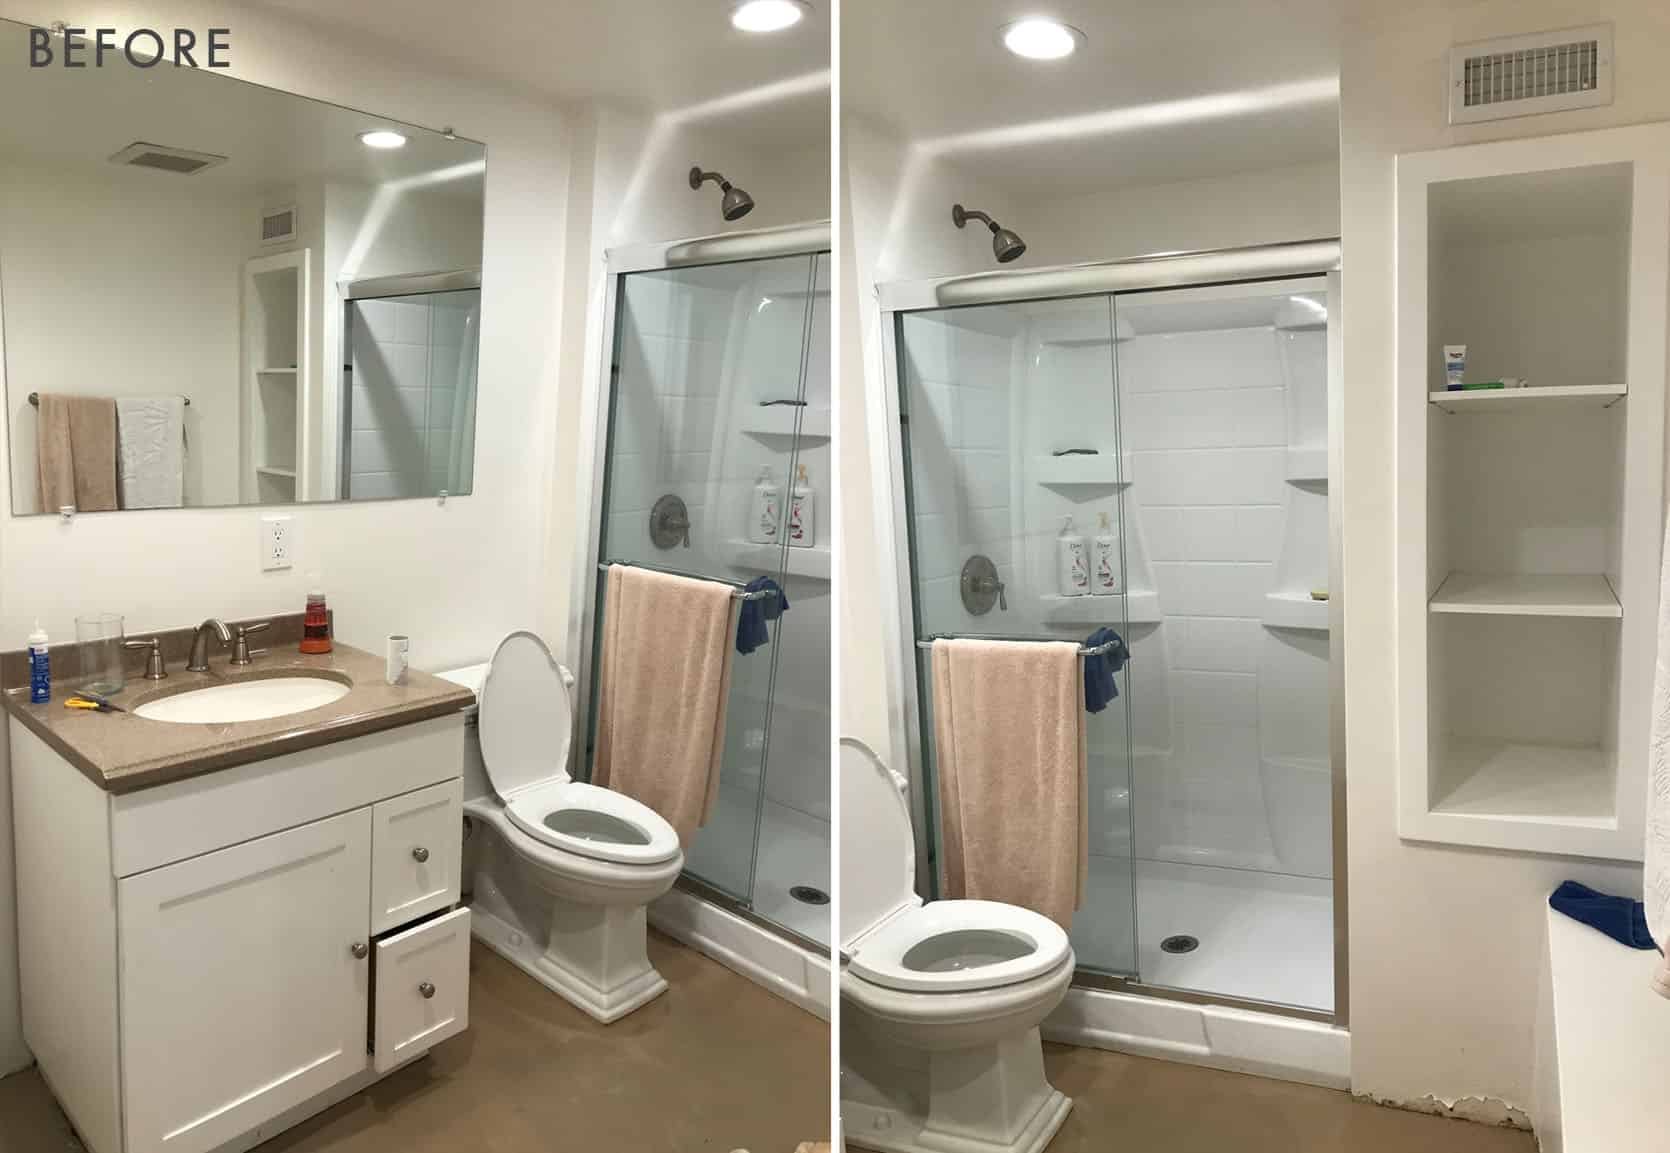 Introducing My Never Been Seen Basement Bathroom And Plan To Make It Awesome With Basic Pieces A Lot Of Vintage Styling Emily Henderson